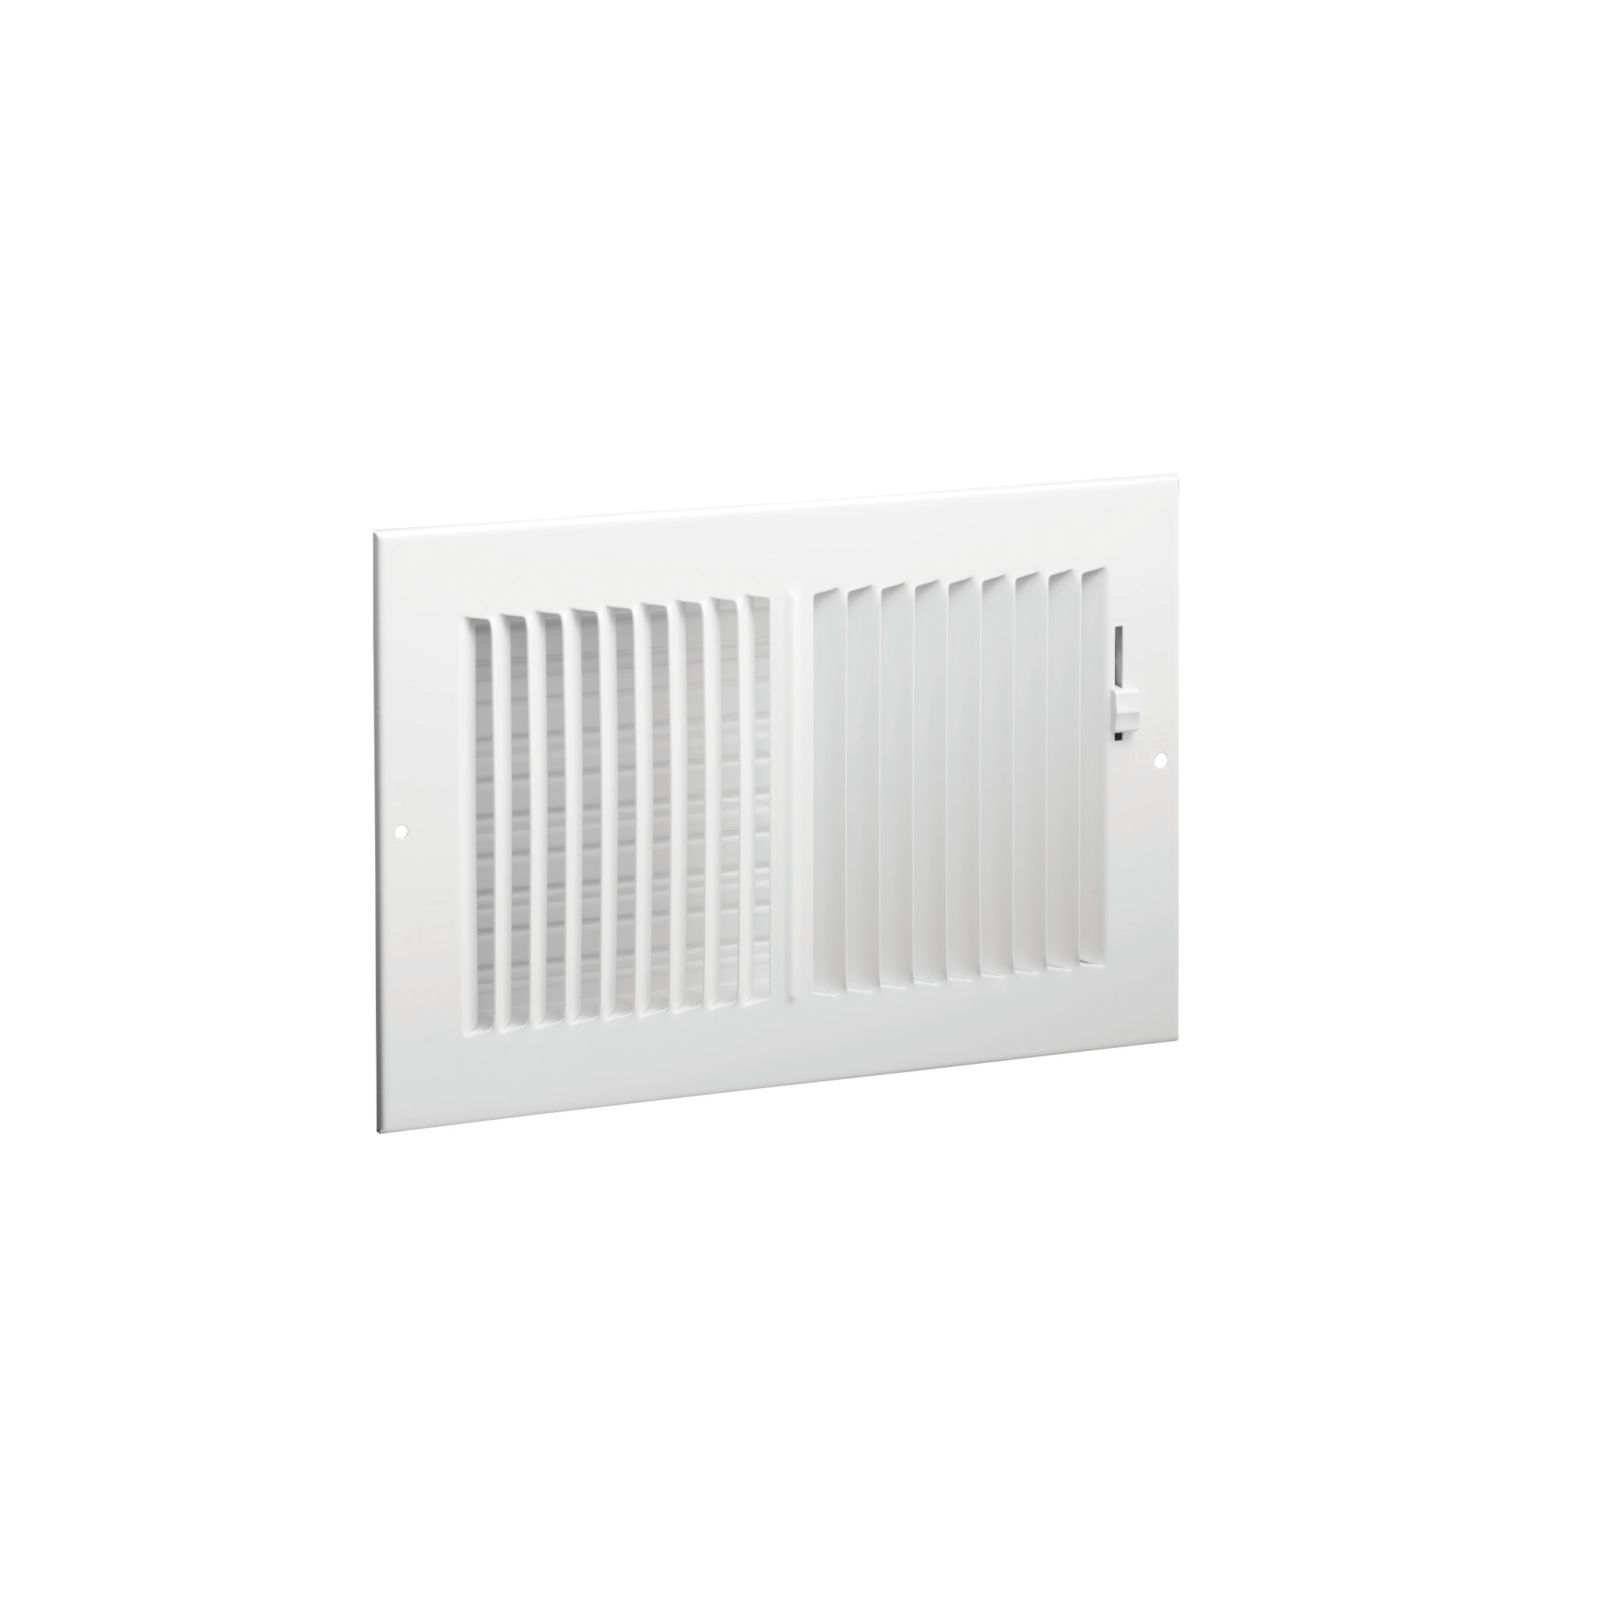 "Hart & Cooley 043830 - #682 Steel 2-Way Sidewall/Ceiling Register, Multi-Shutter Damper With Plastic Handle, White, 10"" X 8"""